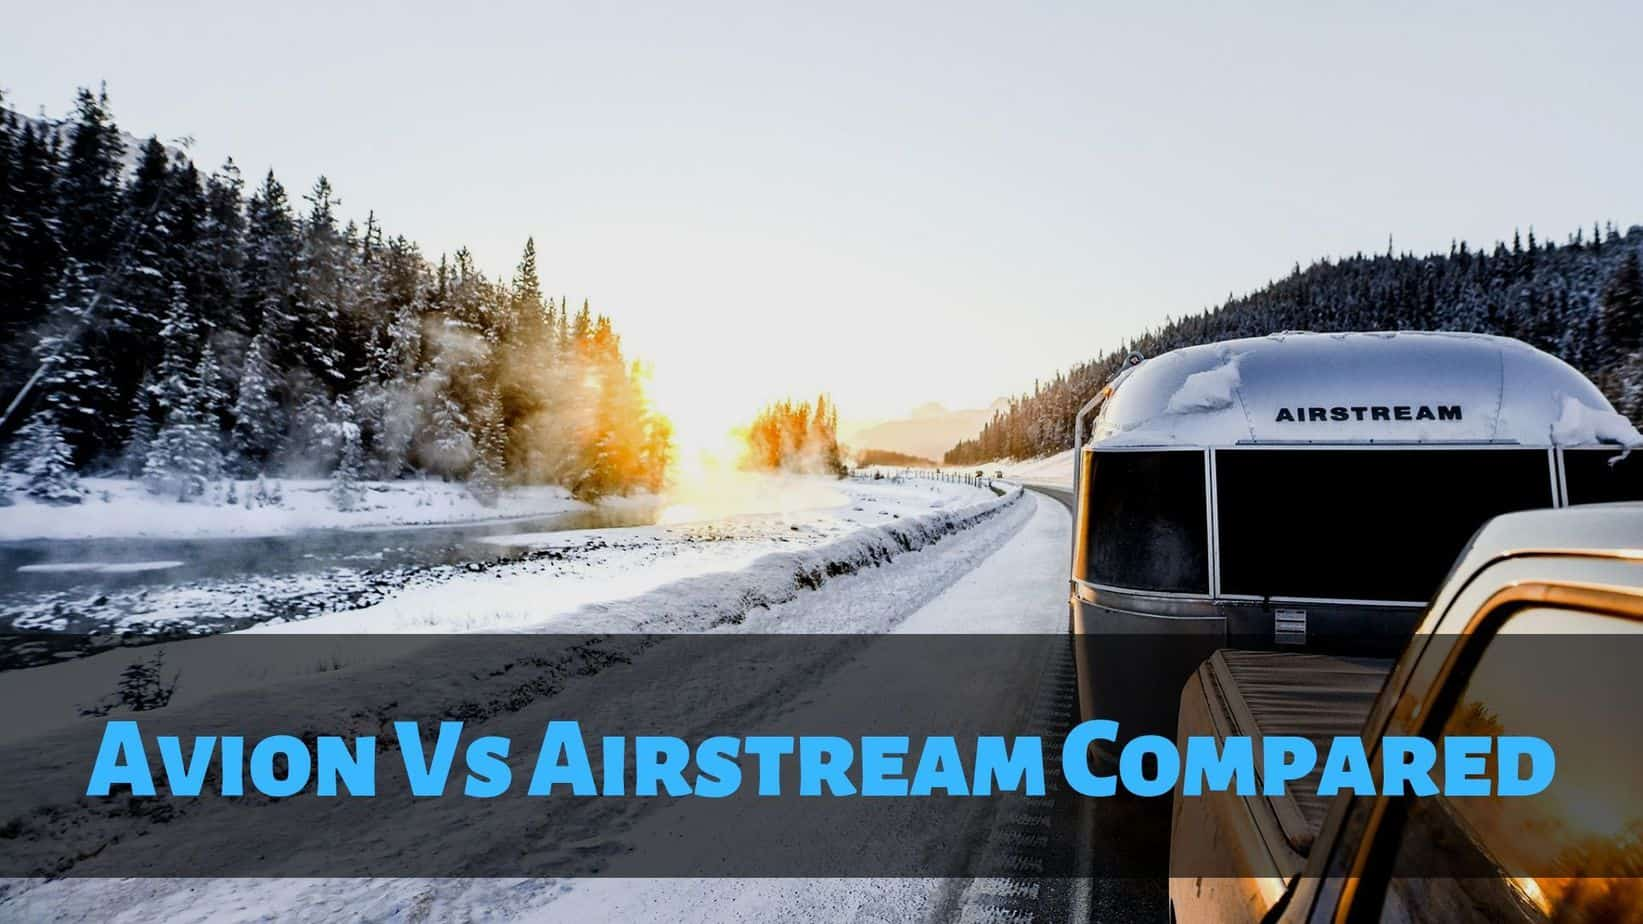 Avion vs Airstream Compared: Which Trailer Is The Best?